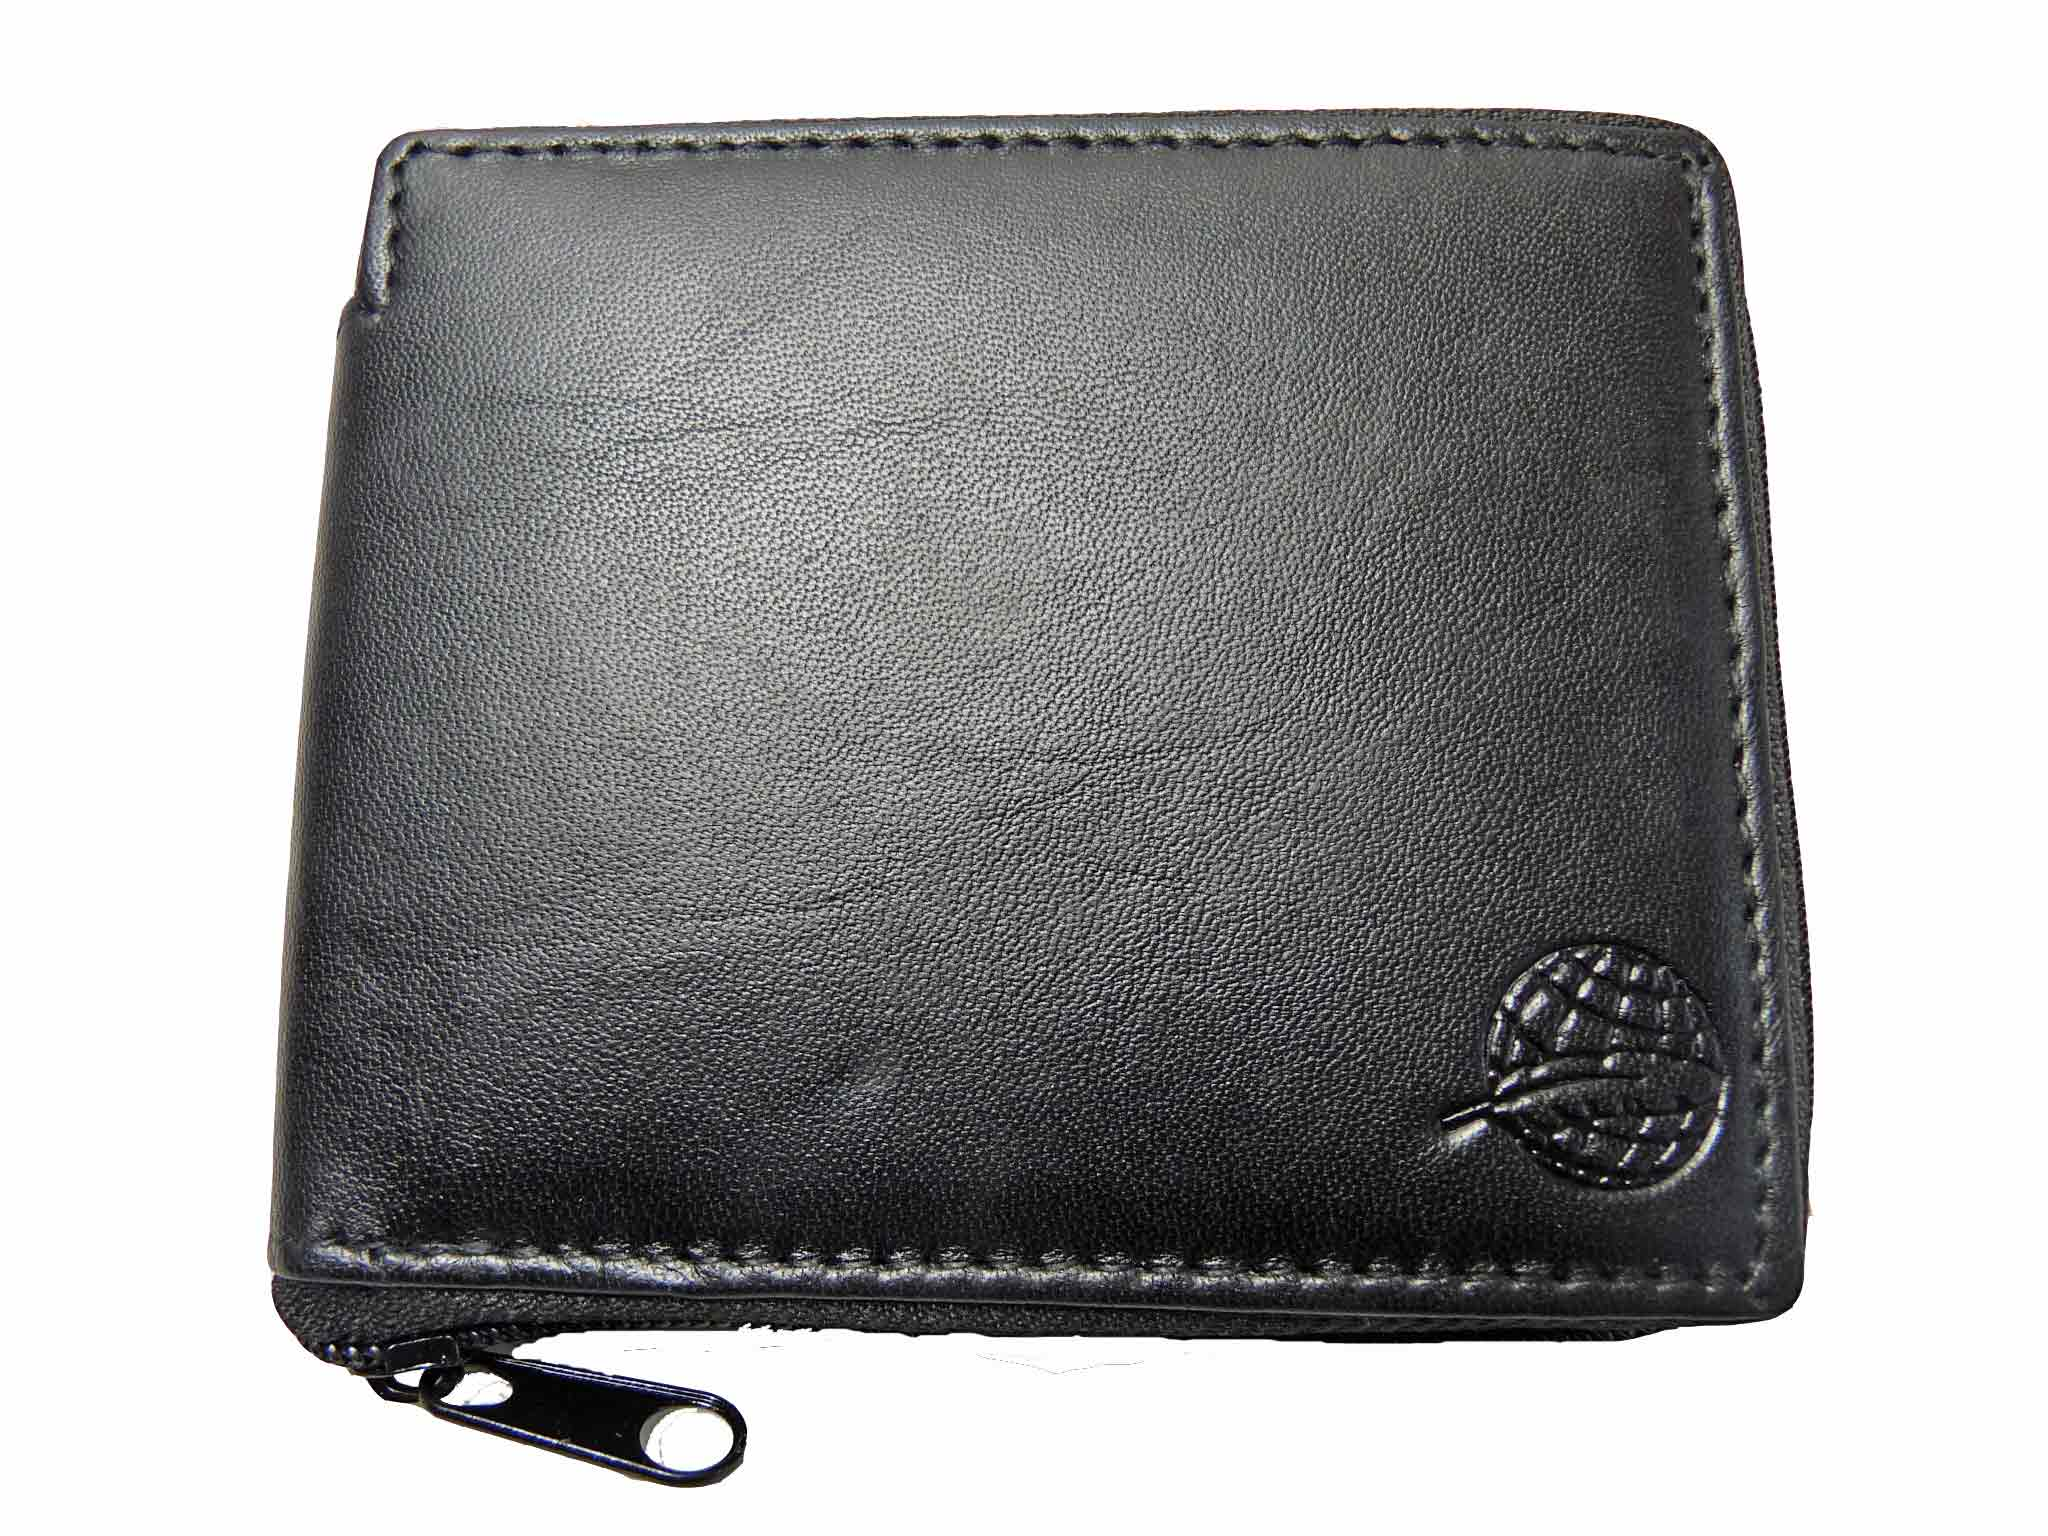 Zip around mens leather wallet RL184K front view